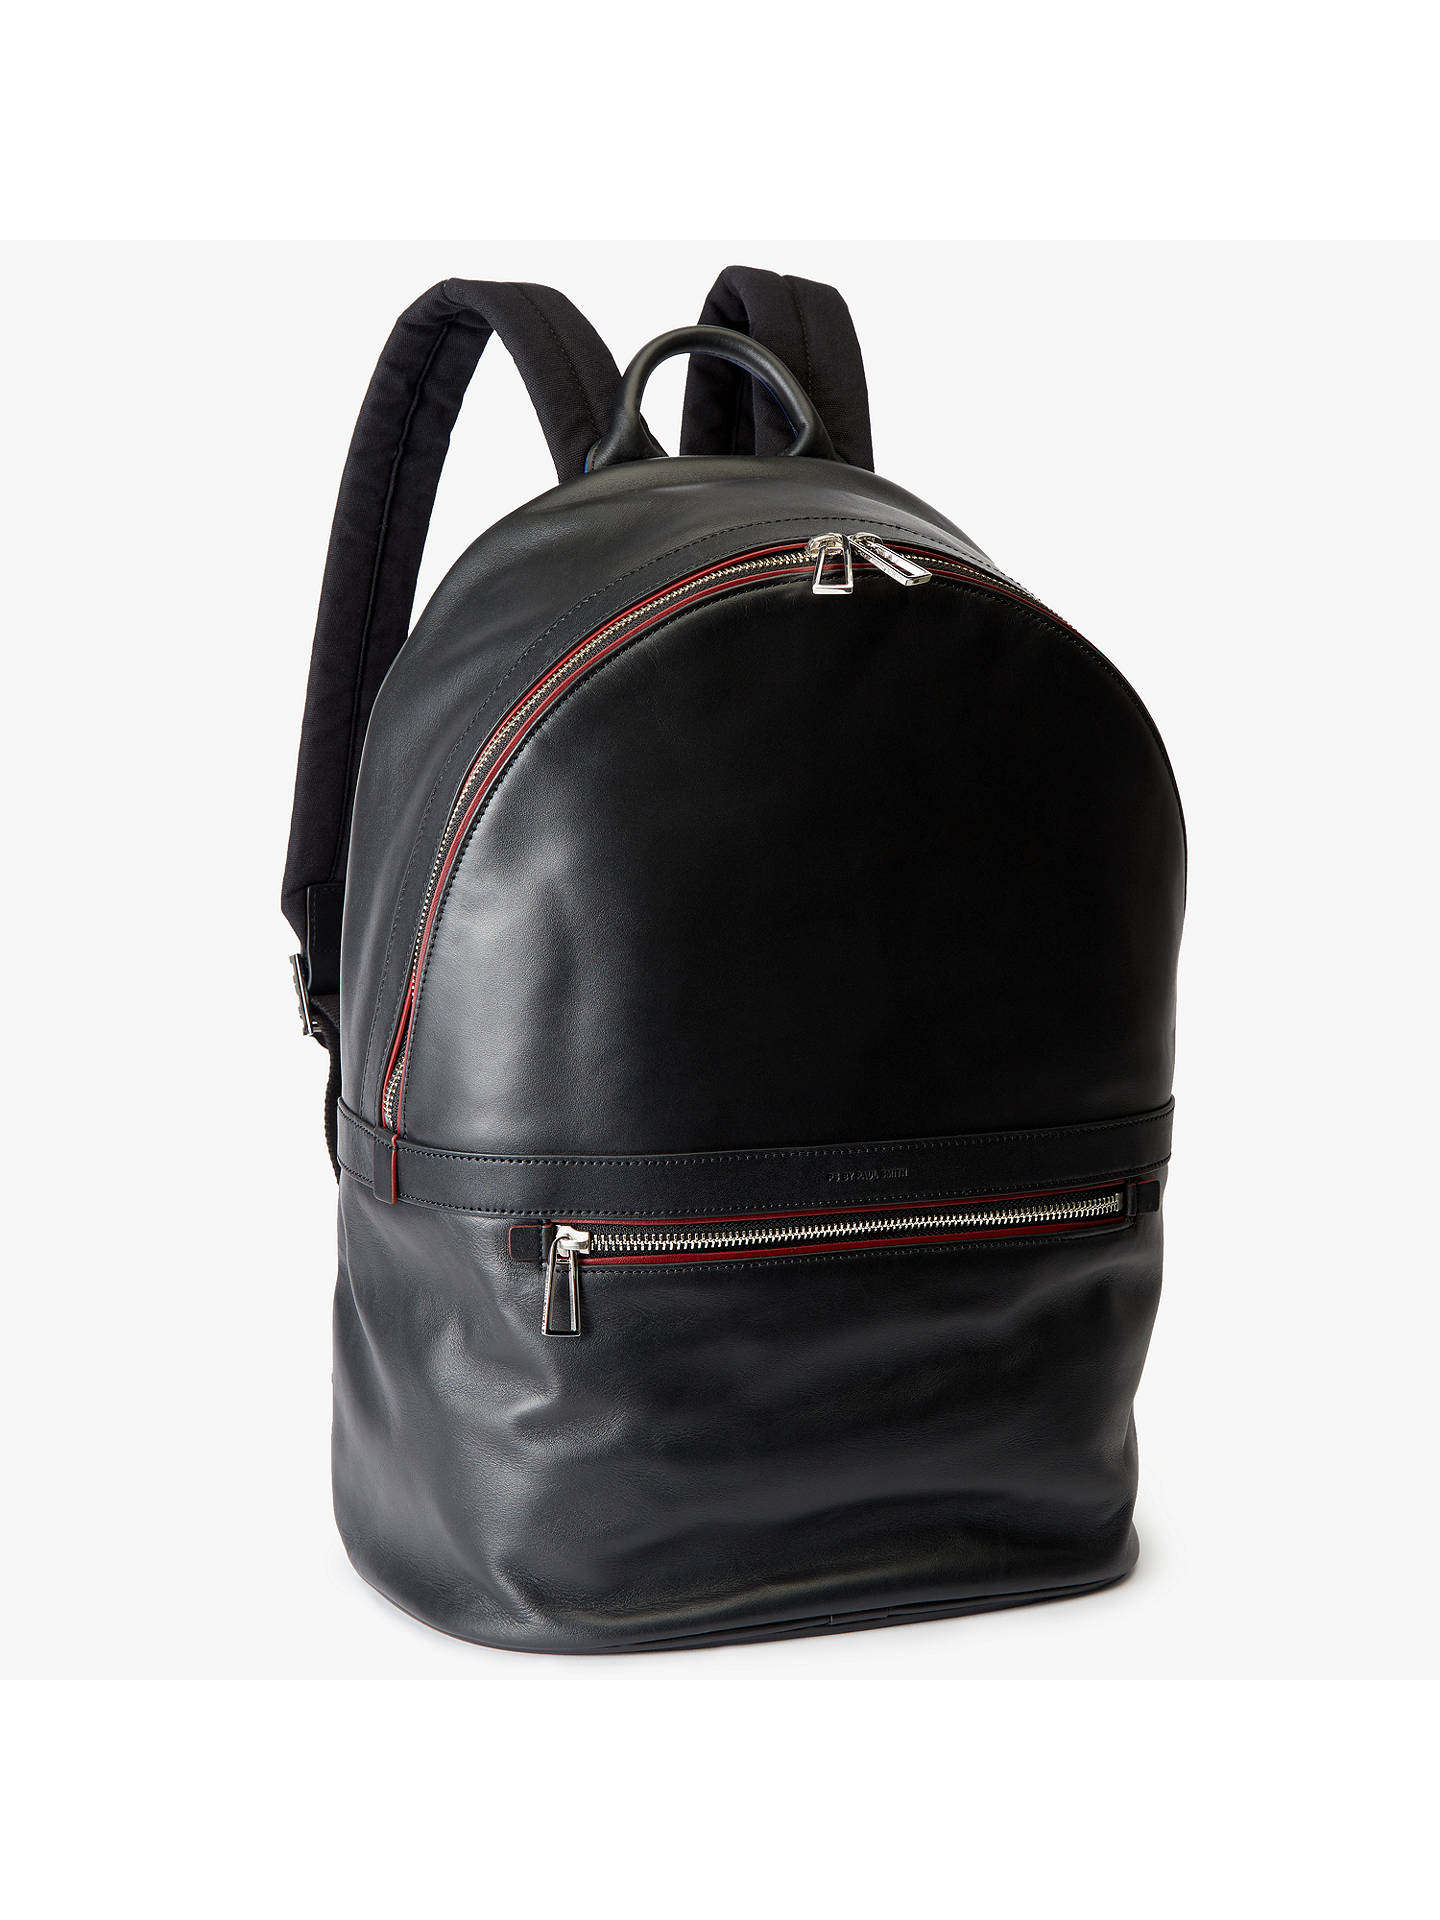 9e13063c80 Buy PS by Paul Smith Calf Leather Backpack